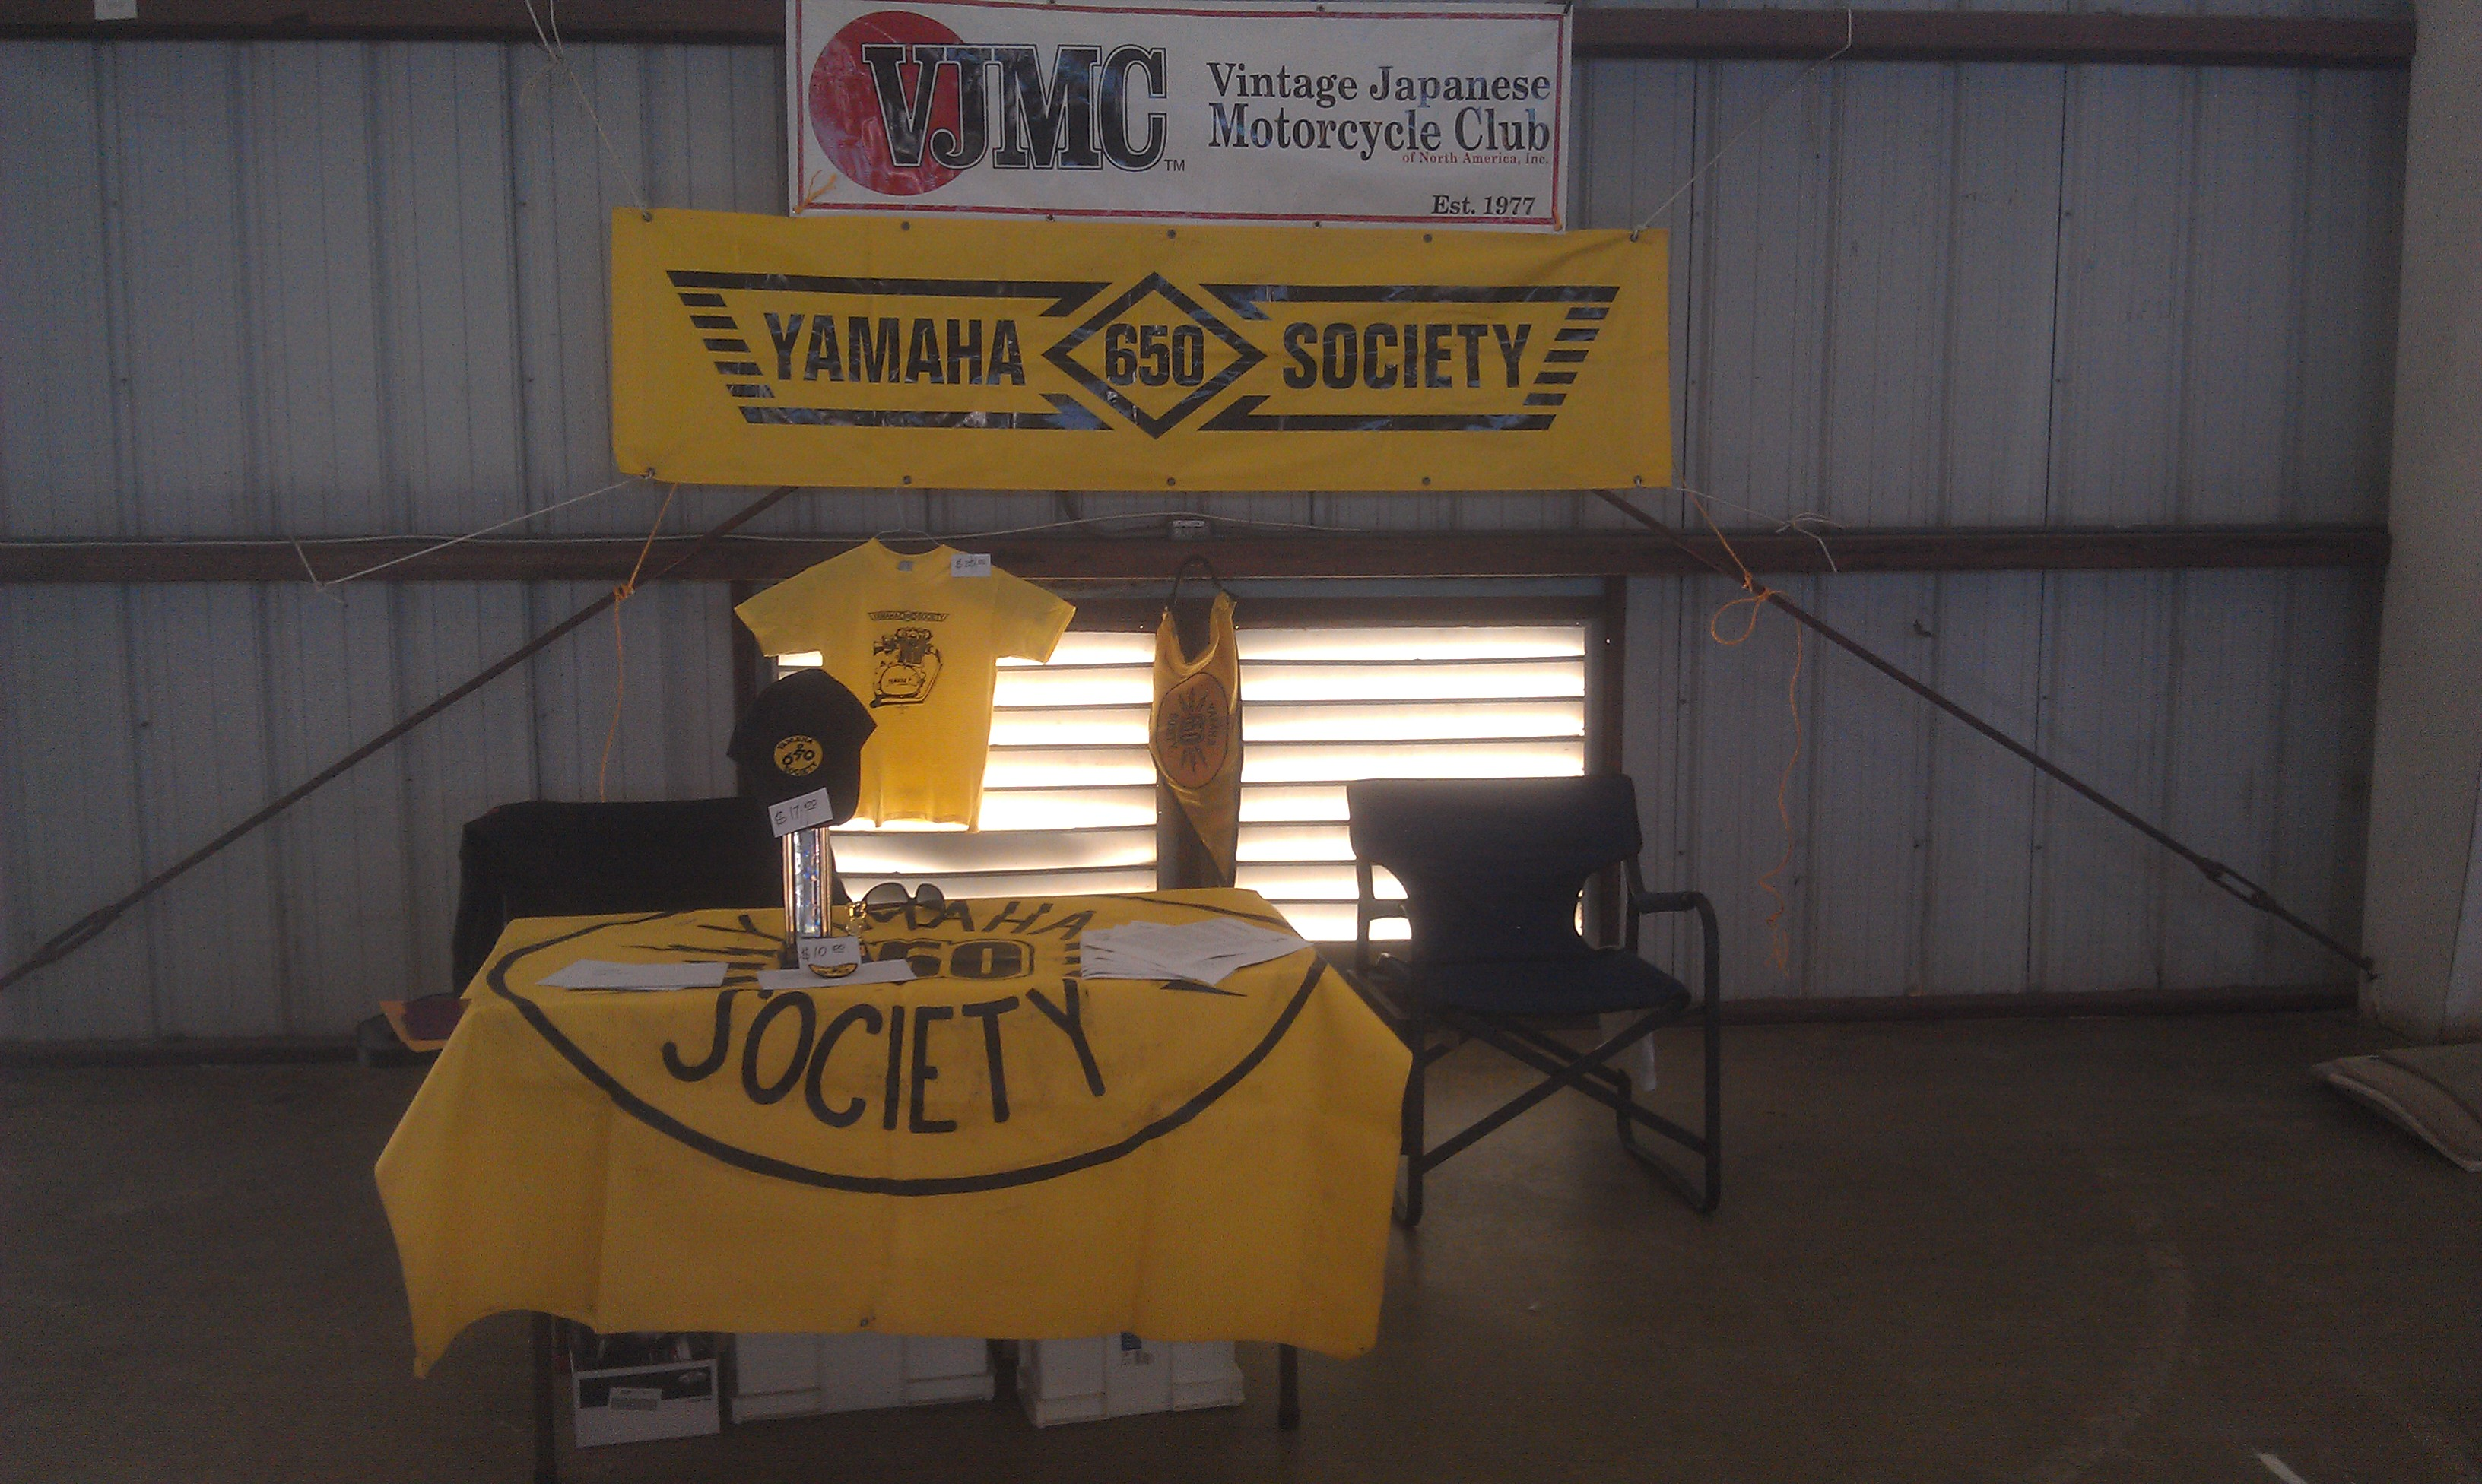 Society Table at the Eustis Show